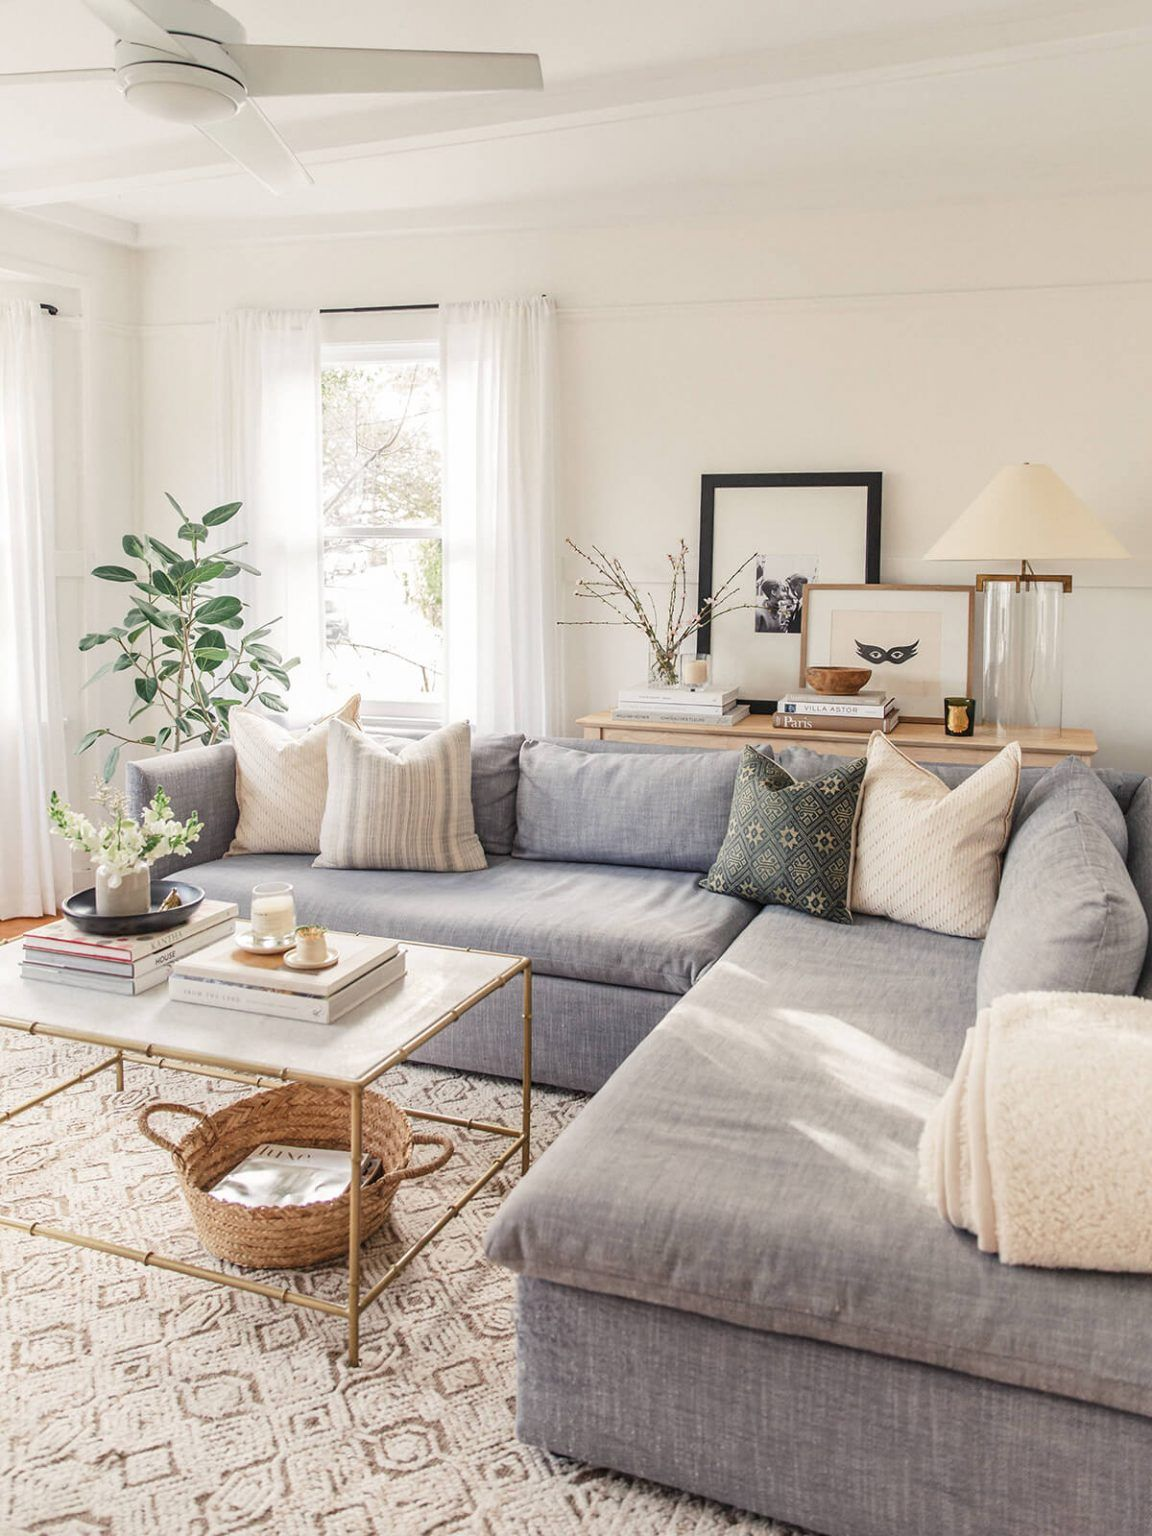 16 Stylish Scandinavian Living Room Ideas That Will Transform Your Space Farm House Living Room Modern Farmhouse Living Room Living Room Scandinavian